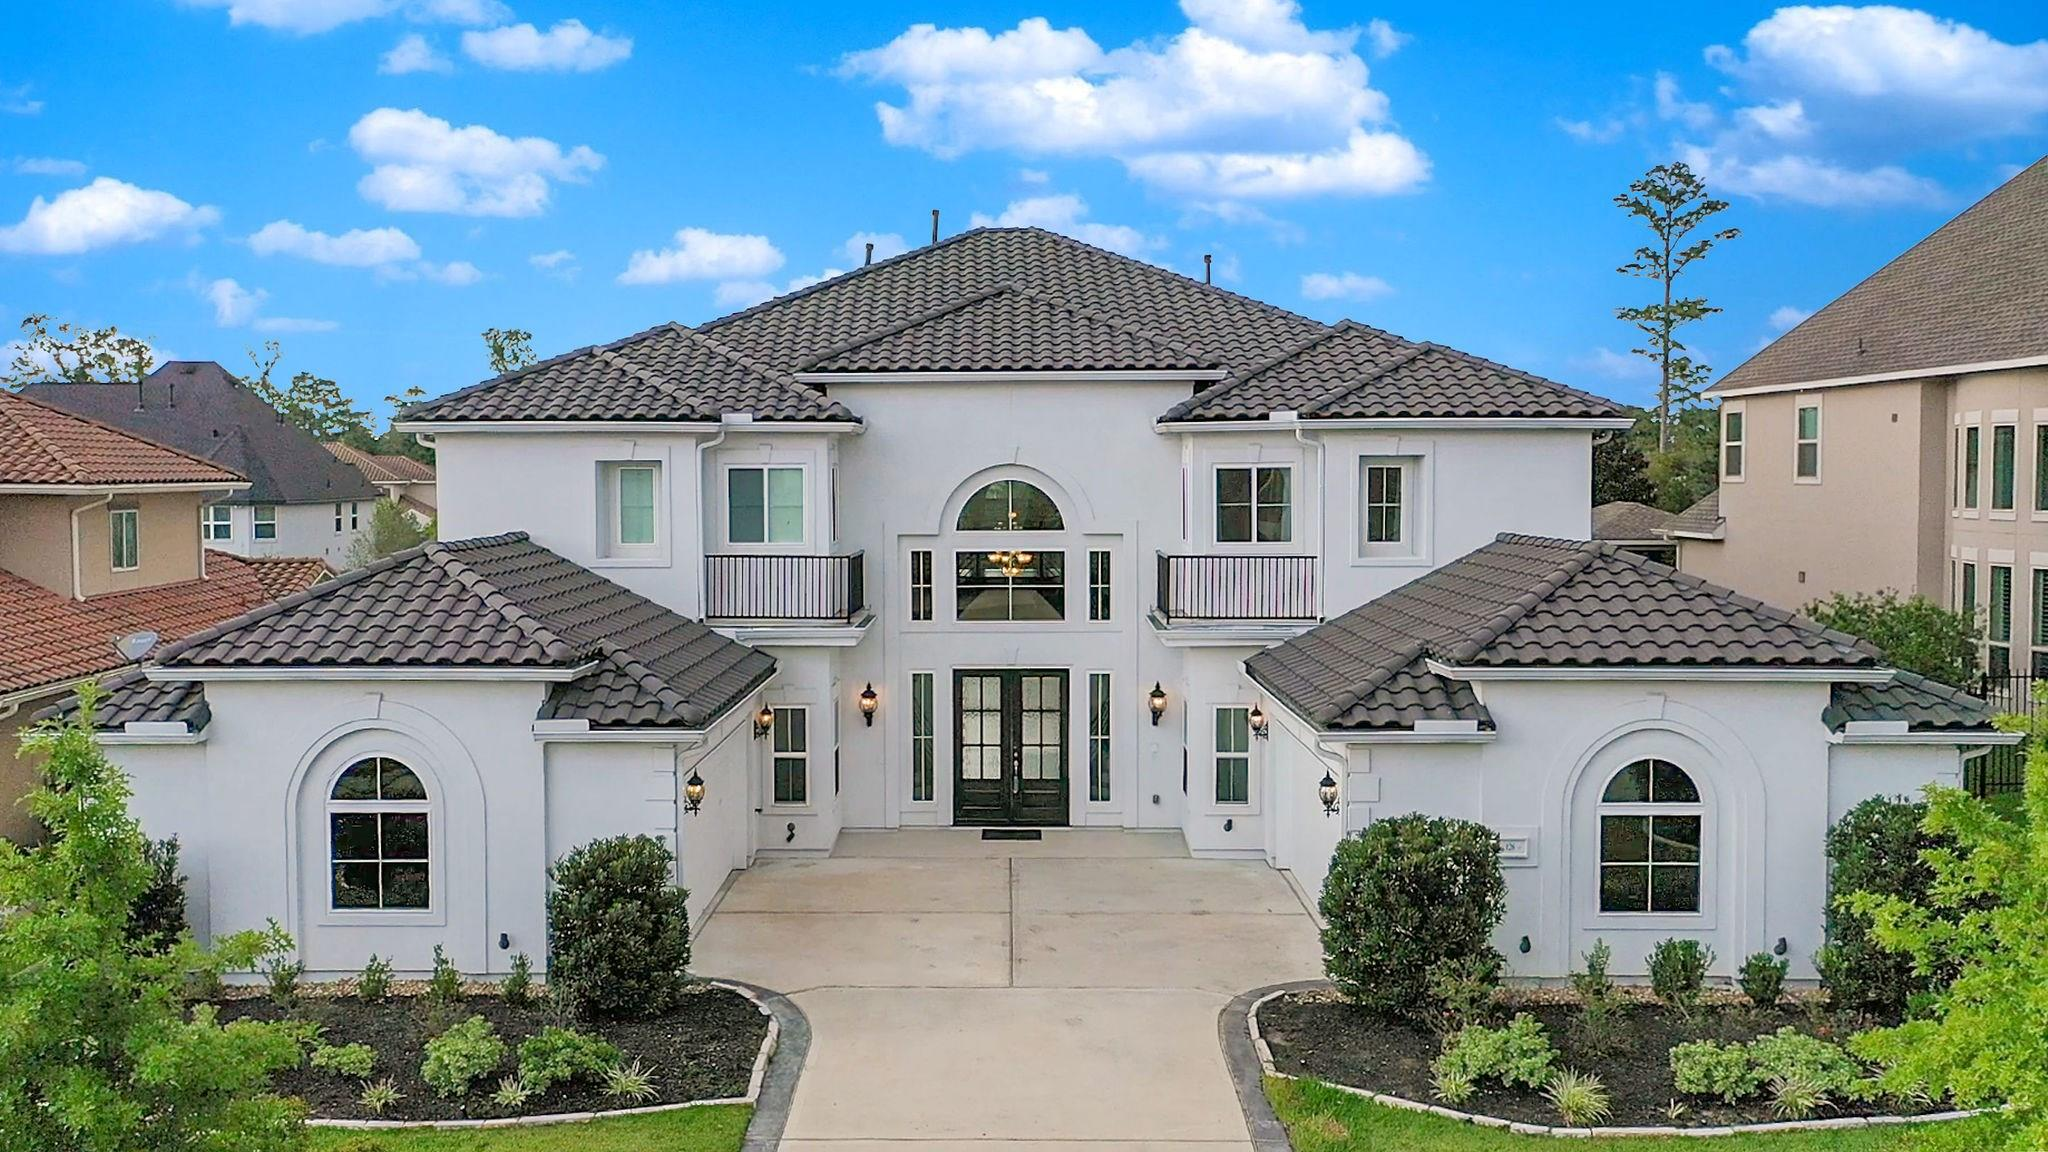 126 S Curly Willow Circle Property Photo - The Woodlands, TX real estate listing